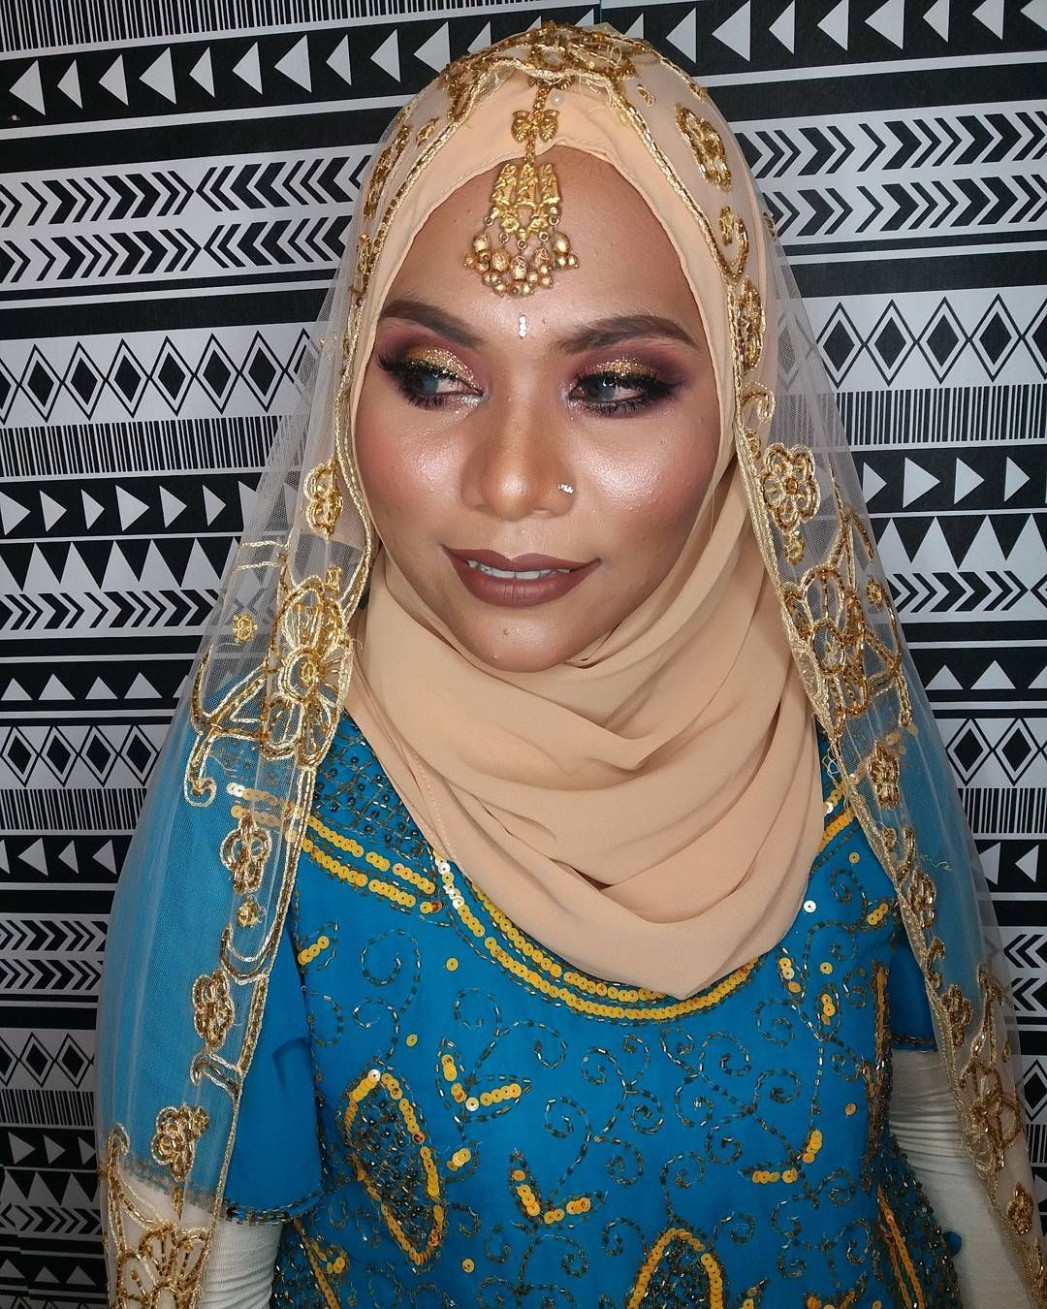 Kak Sya makeup syaffaziz for dinner tema Bollywood katenye ...